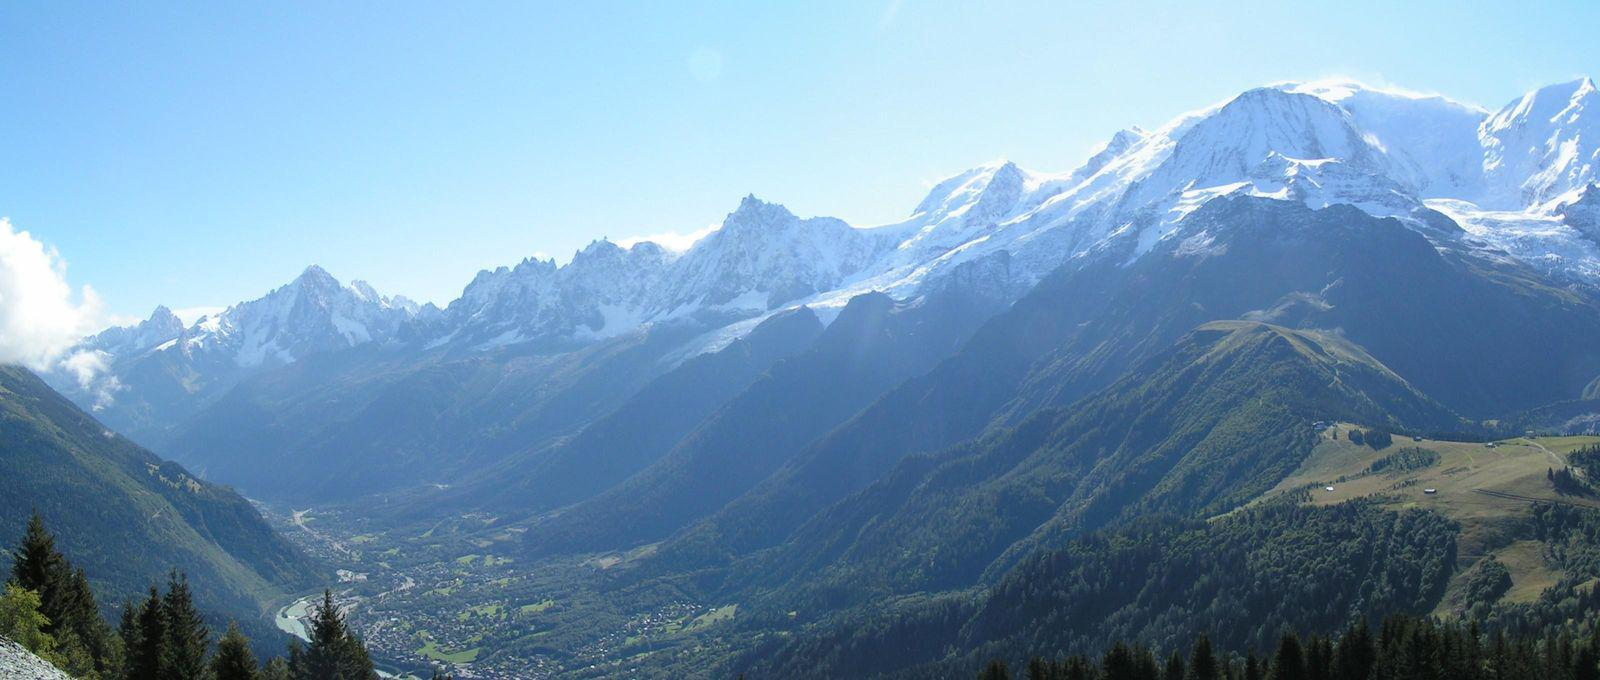 Prarion_Les Houches